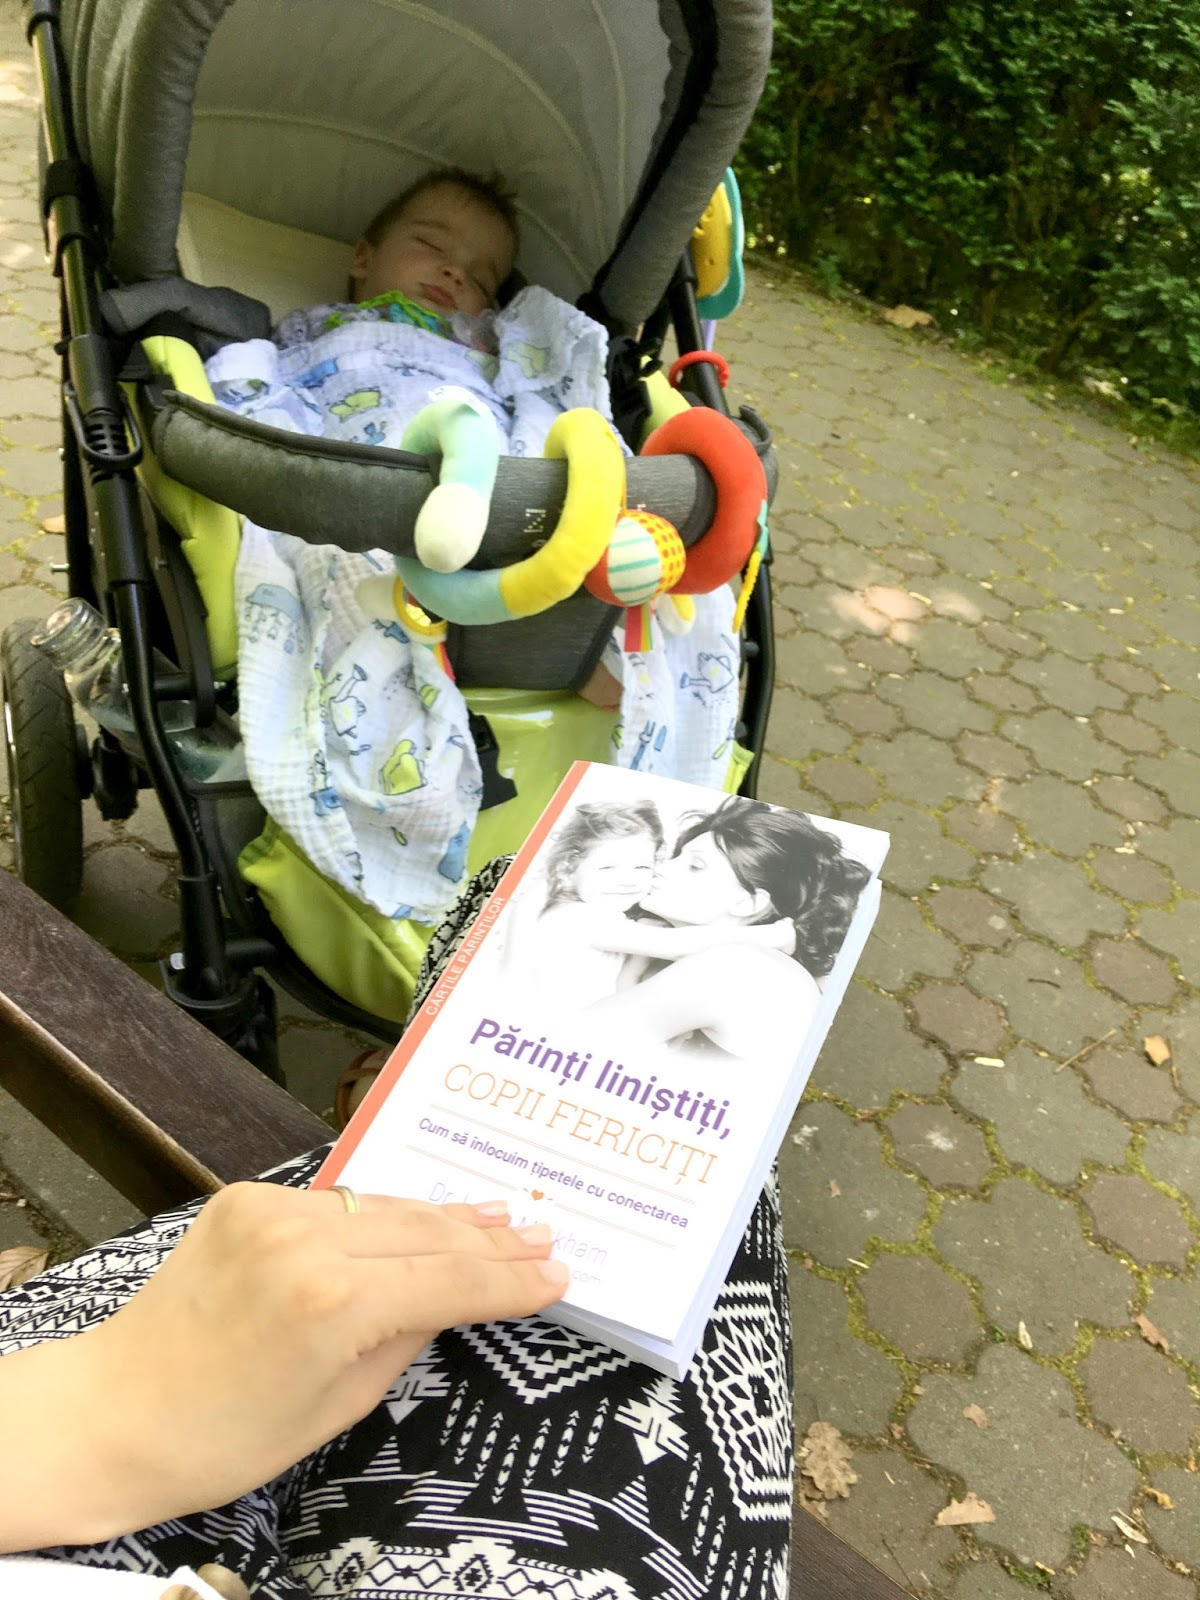 sleeping baby in stroller and mom reading parenting book